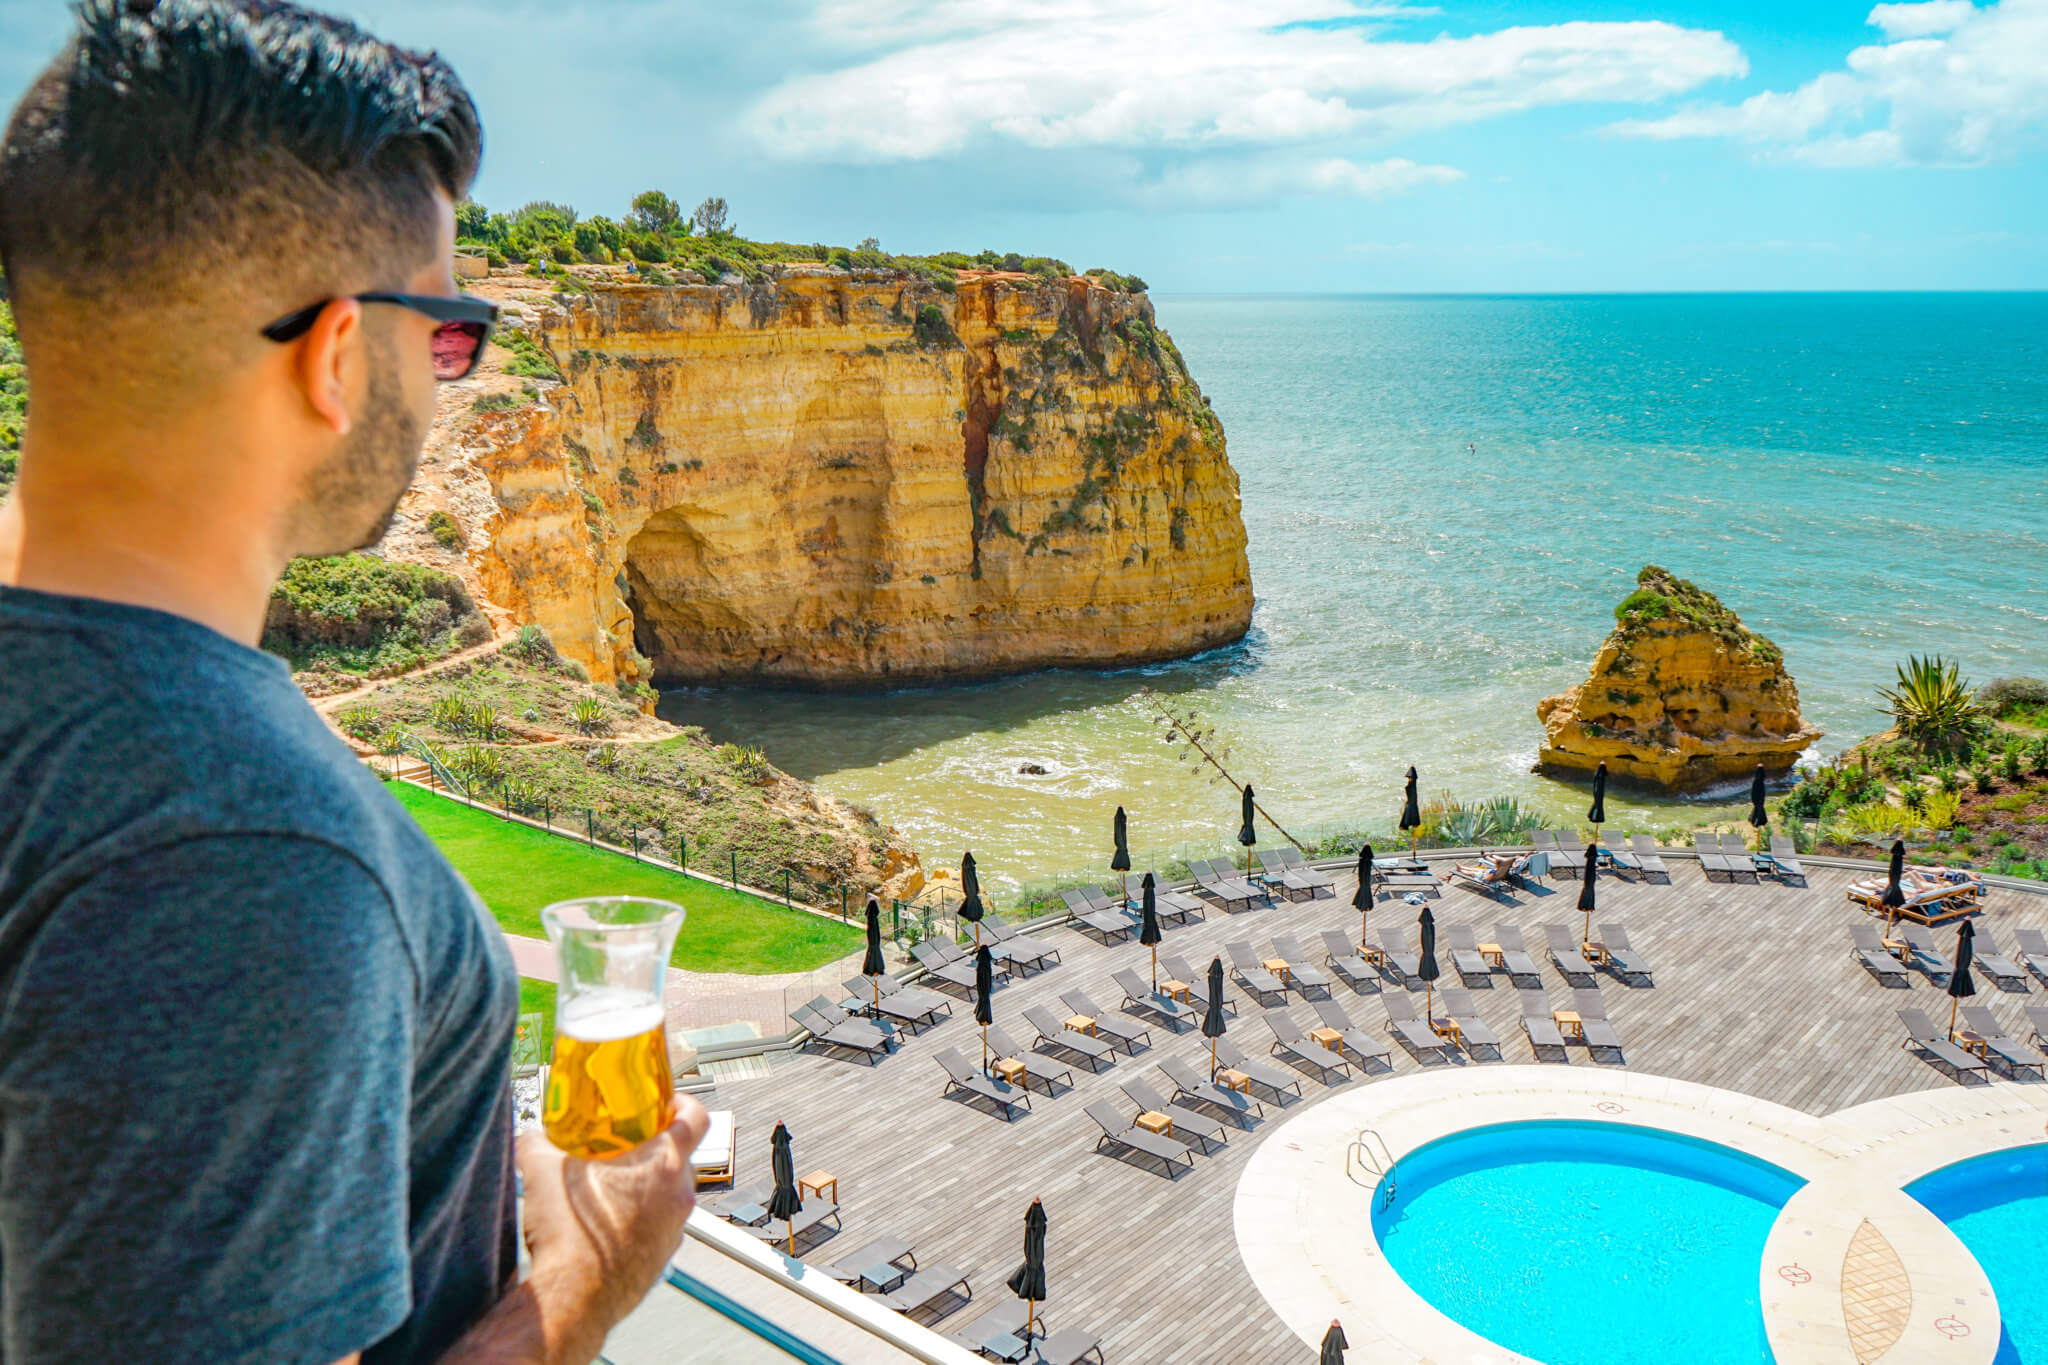 Hotel Tivoli Carvoeiro Algarve Booking Algarve Tivoli Carvoeiro Next Departure